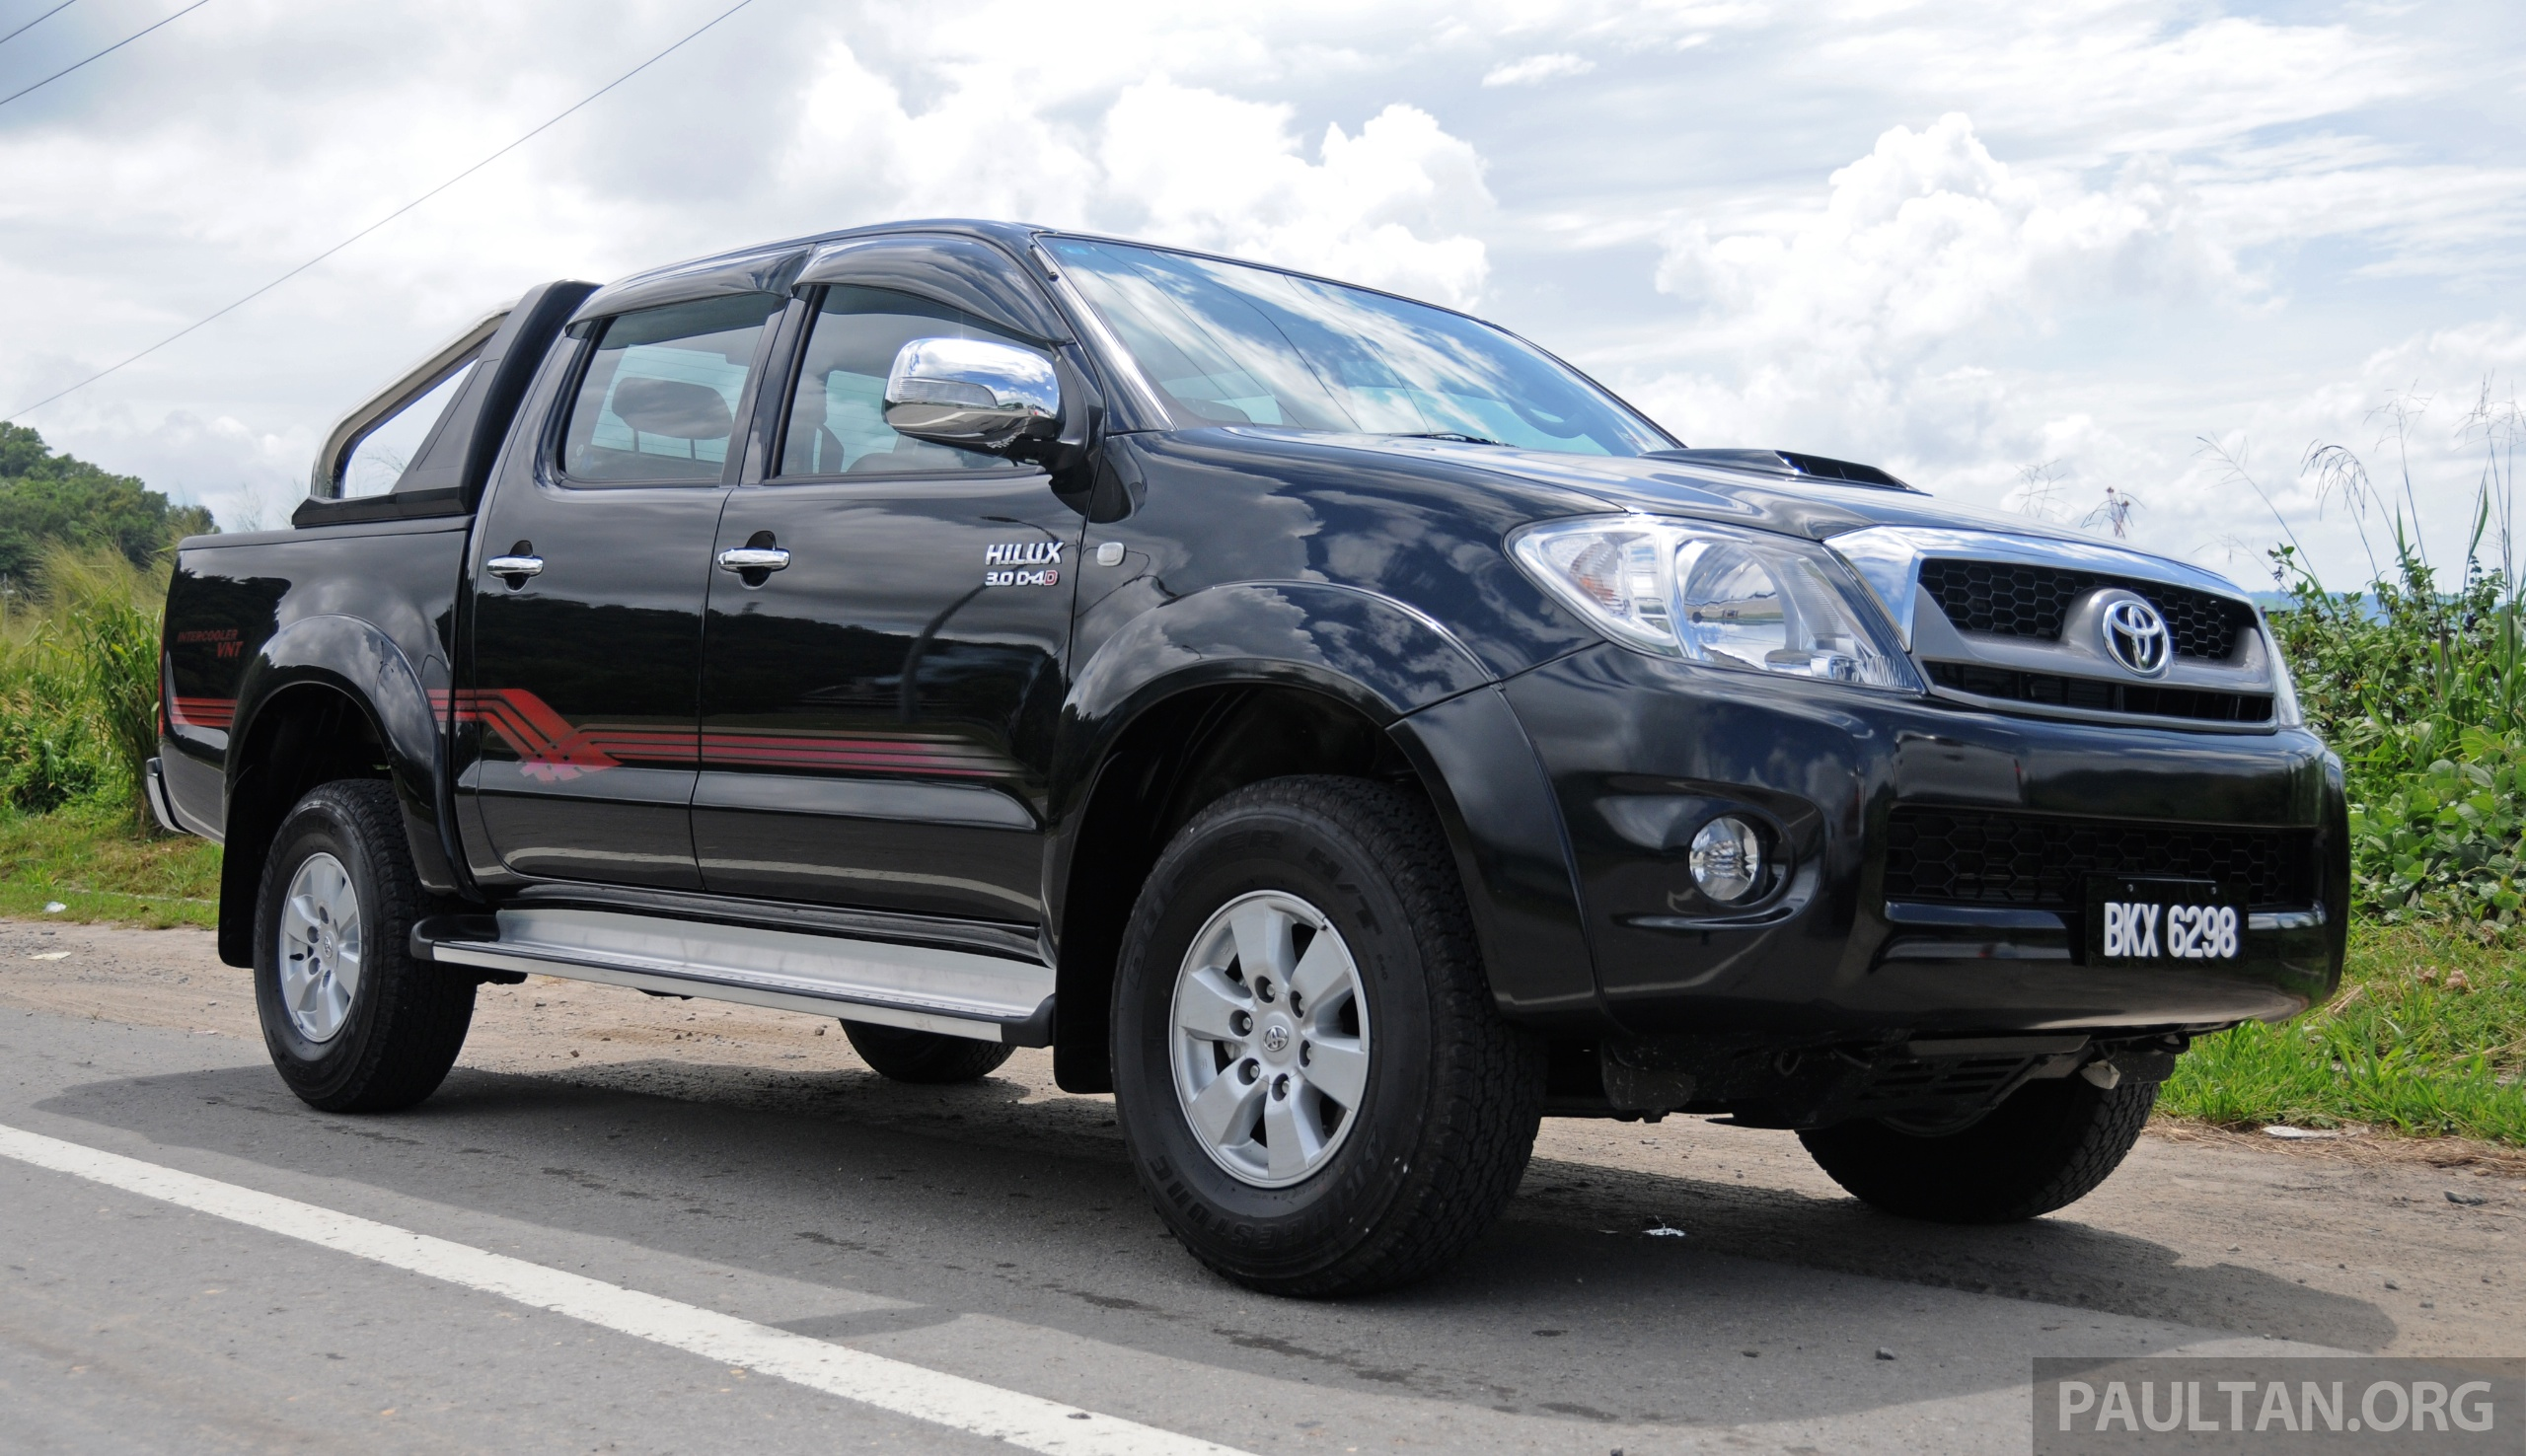 2005 2010 Toyota Hilux Fortuner And Innova Recalled Image